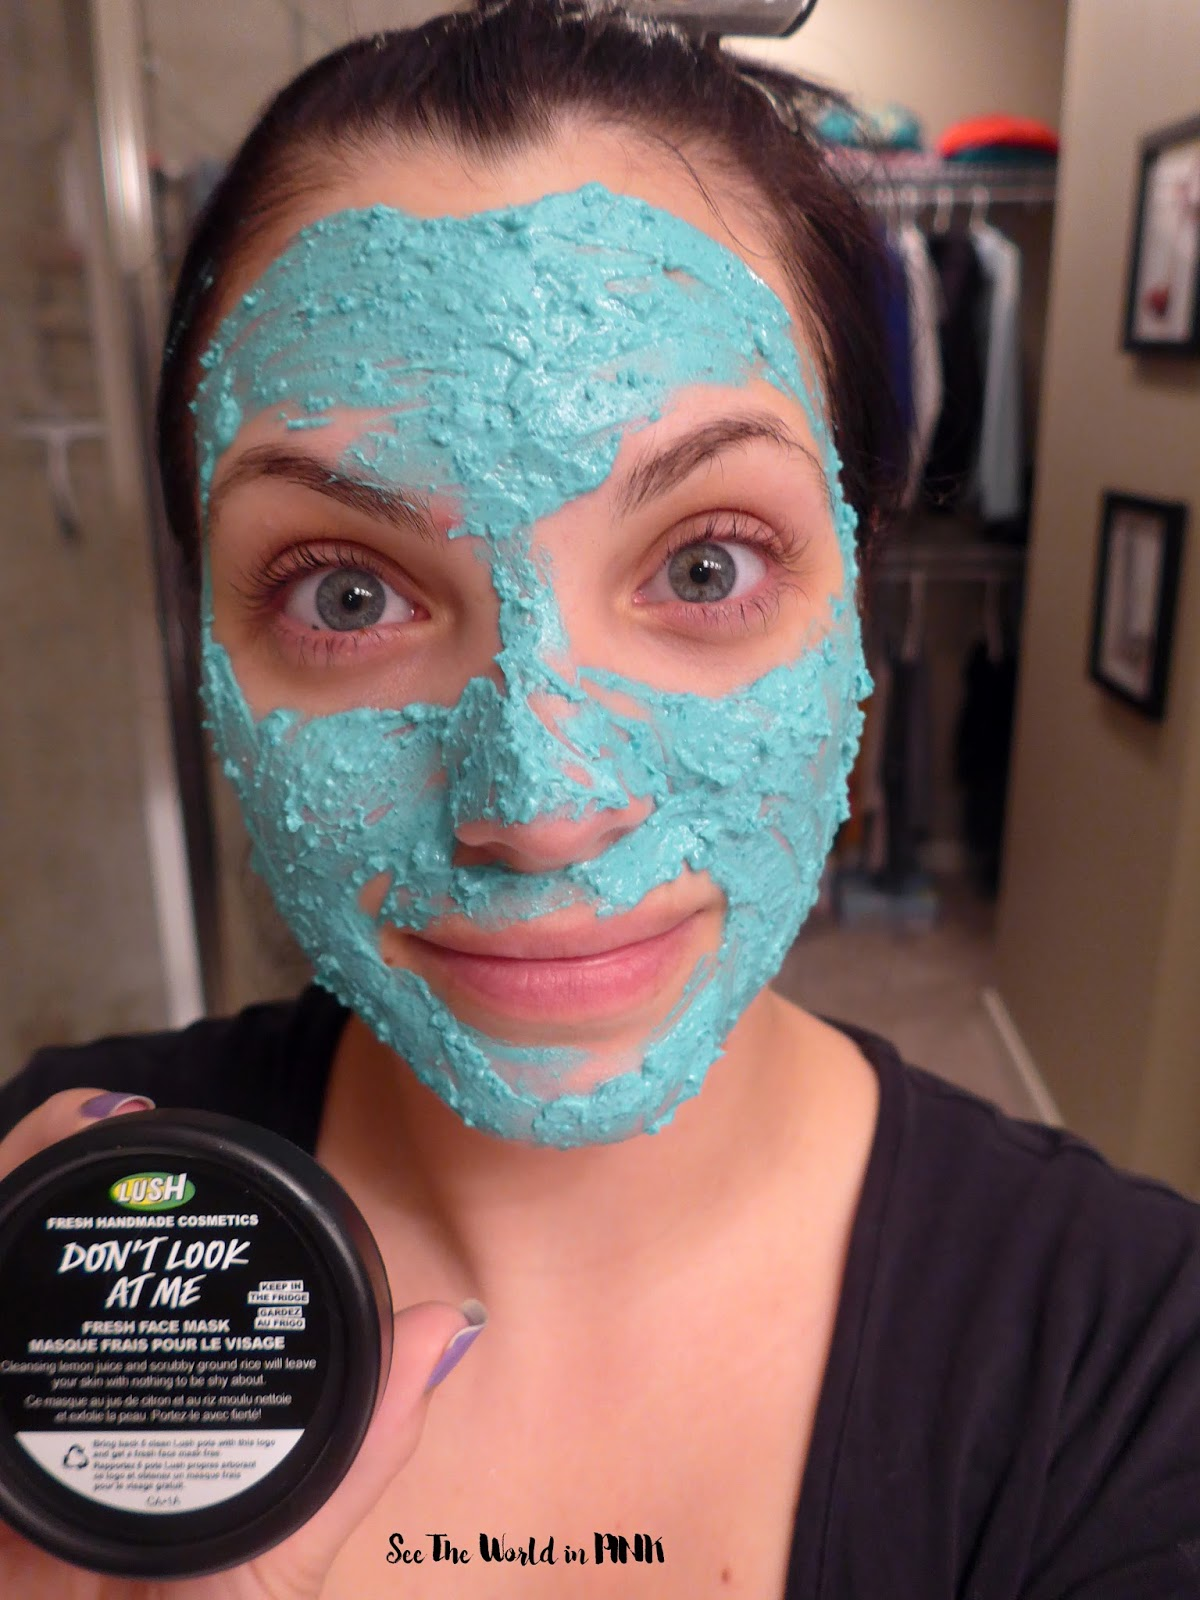 Dont look at me lush face mask review - Lush Fresh Face Mask Don T Look At Me 10 95 Well Hello Don T Be Shy Smooth On This Vivid Blue Mask And You Ll Want To Show Anyone And Everyone Your